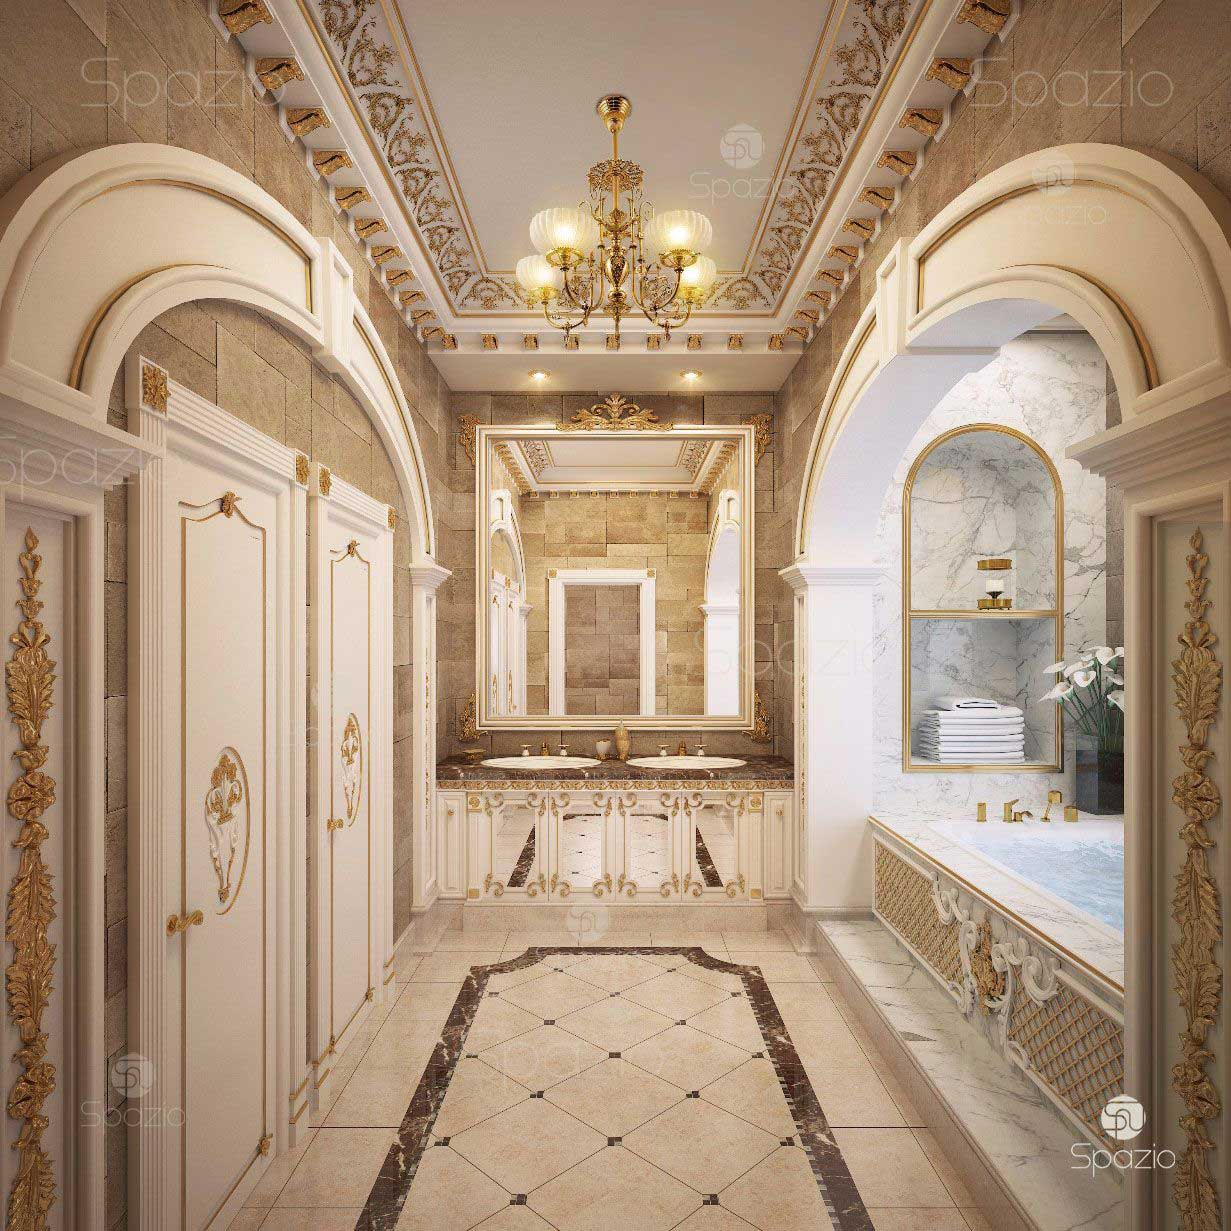 Luxury palace interior design in the uae spazio for Bathroom interior design dubai